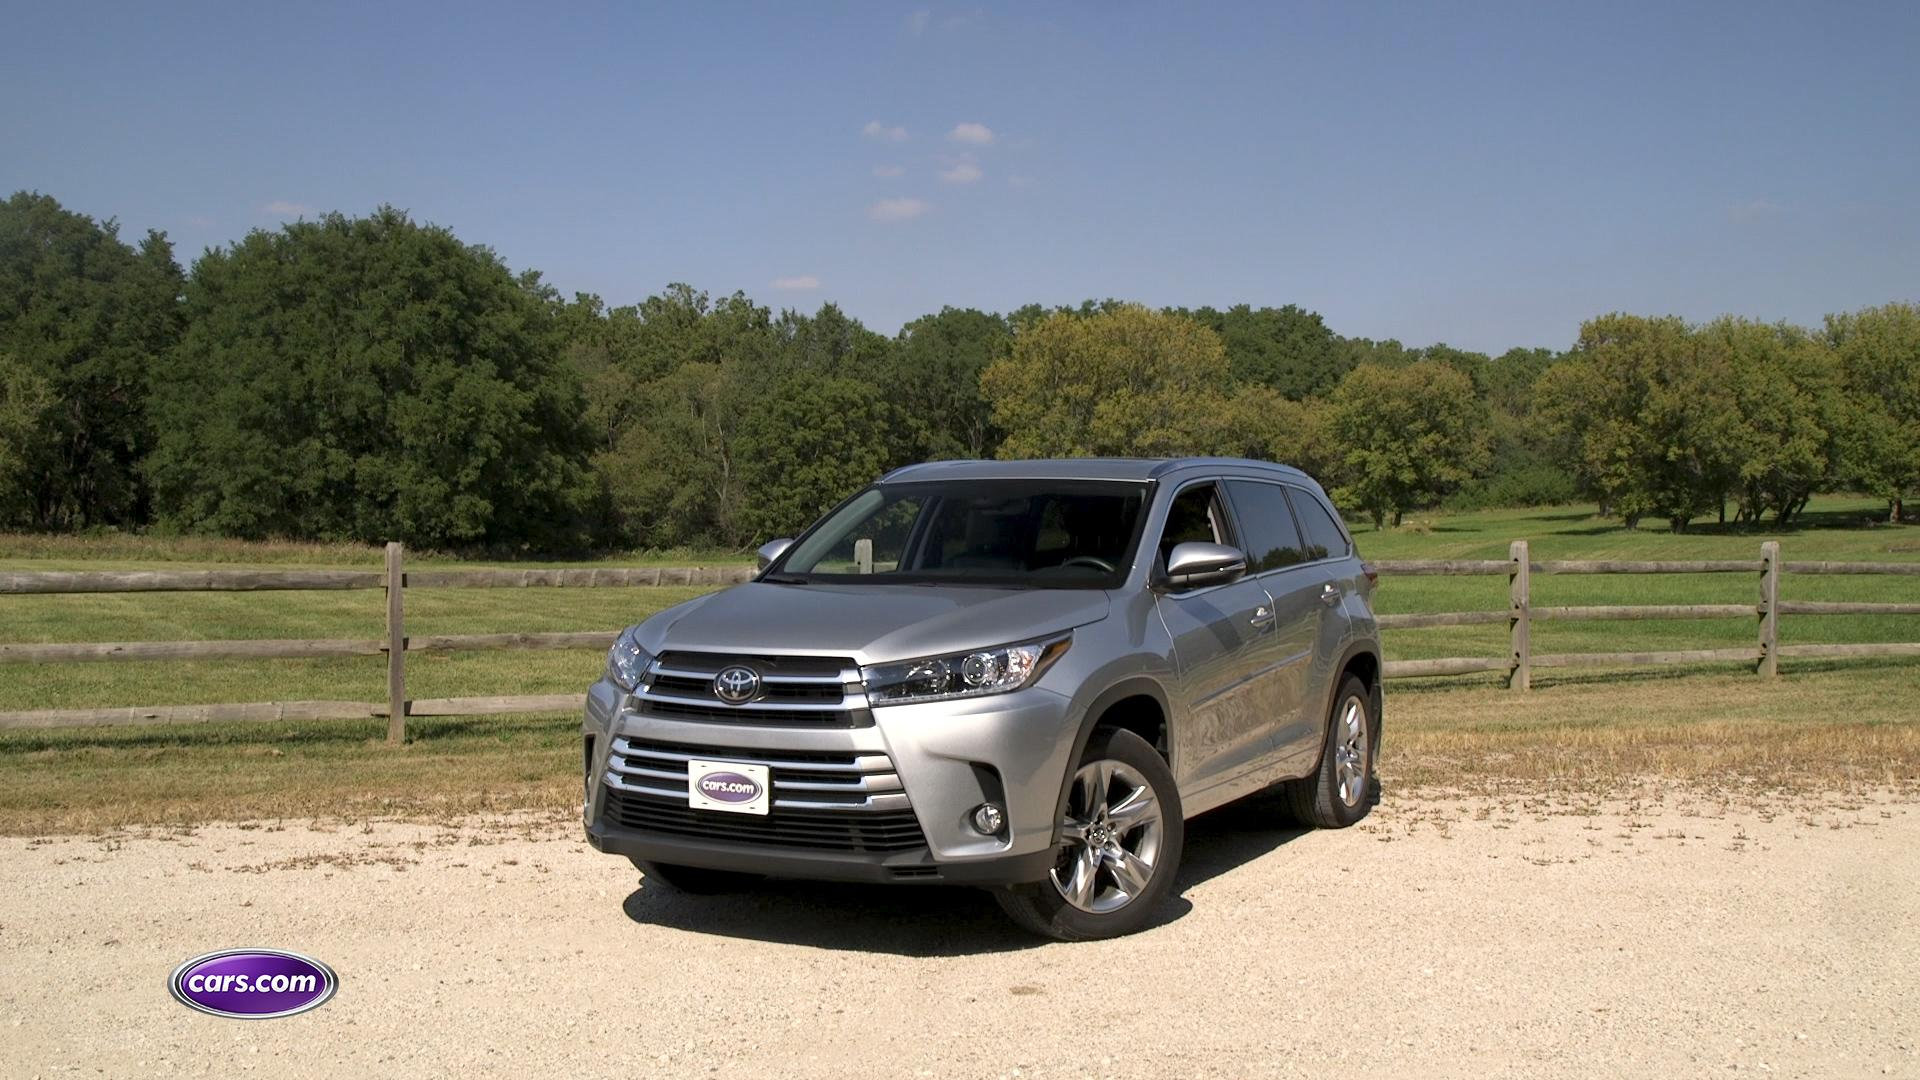 Toyota Highlander Owners Manual: Uniform tire quality grading